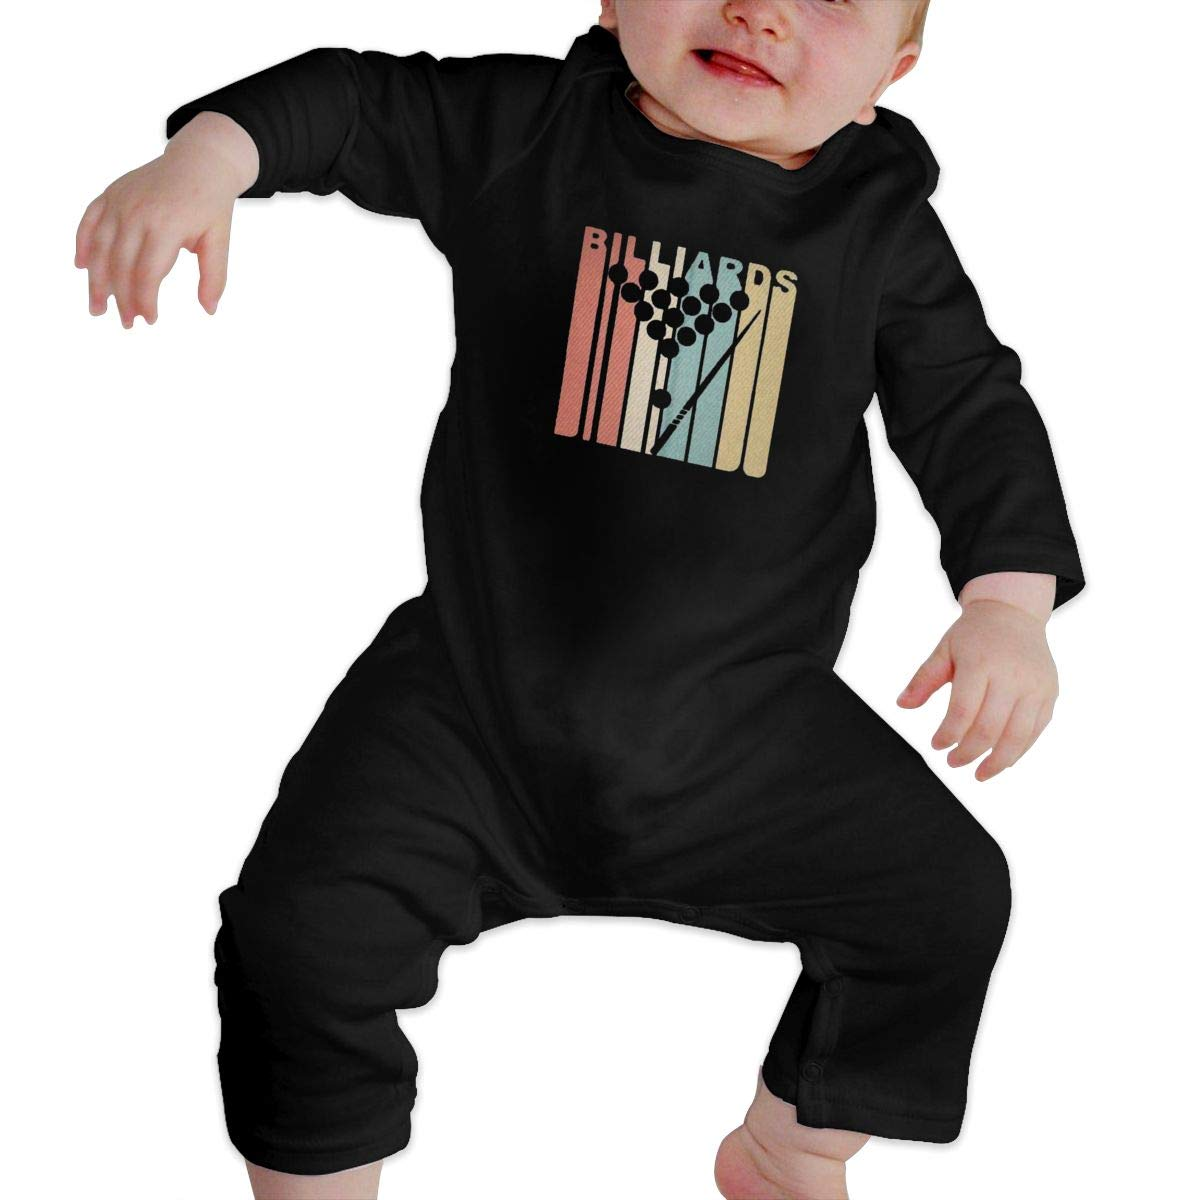 Fasenix Billiards Newborn Baby Boy Girl Romper Jumpsuit Long Sleeve Bodysuit Overalls Outfits Clothes